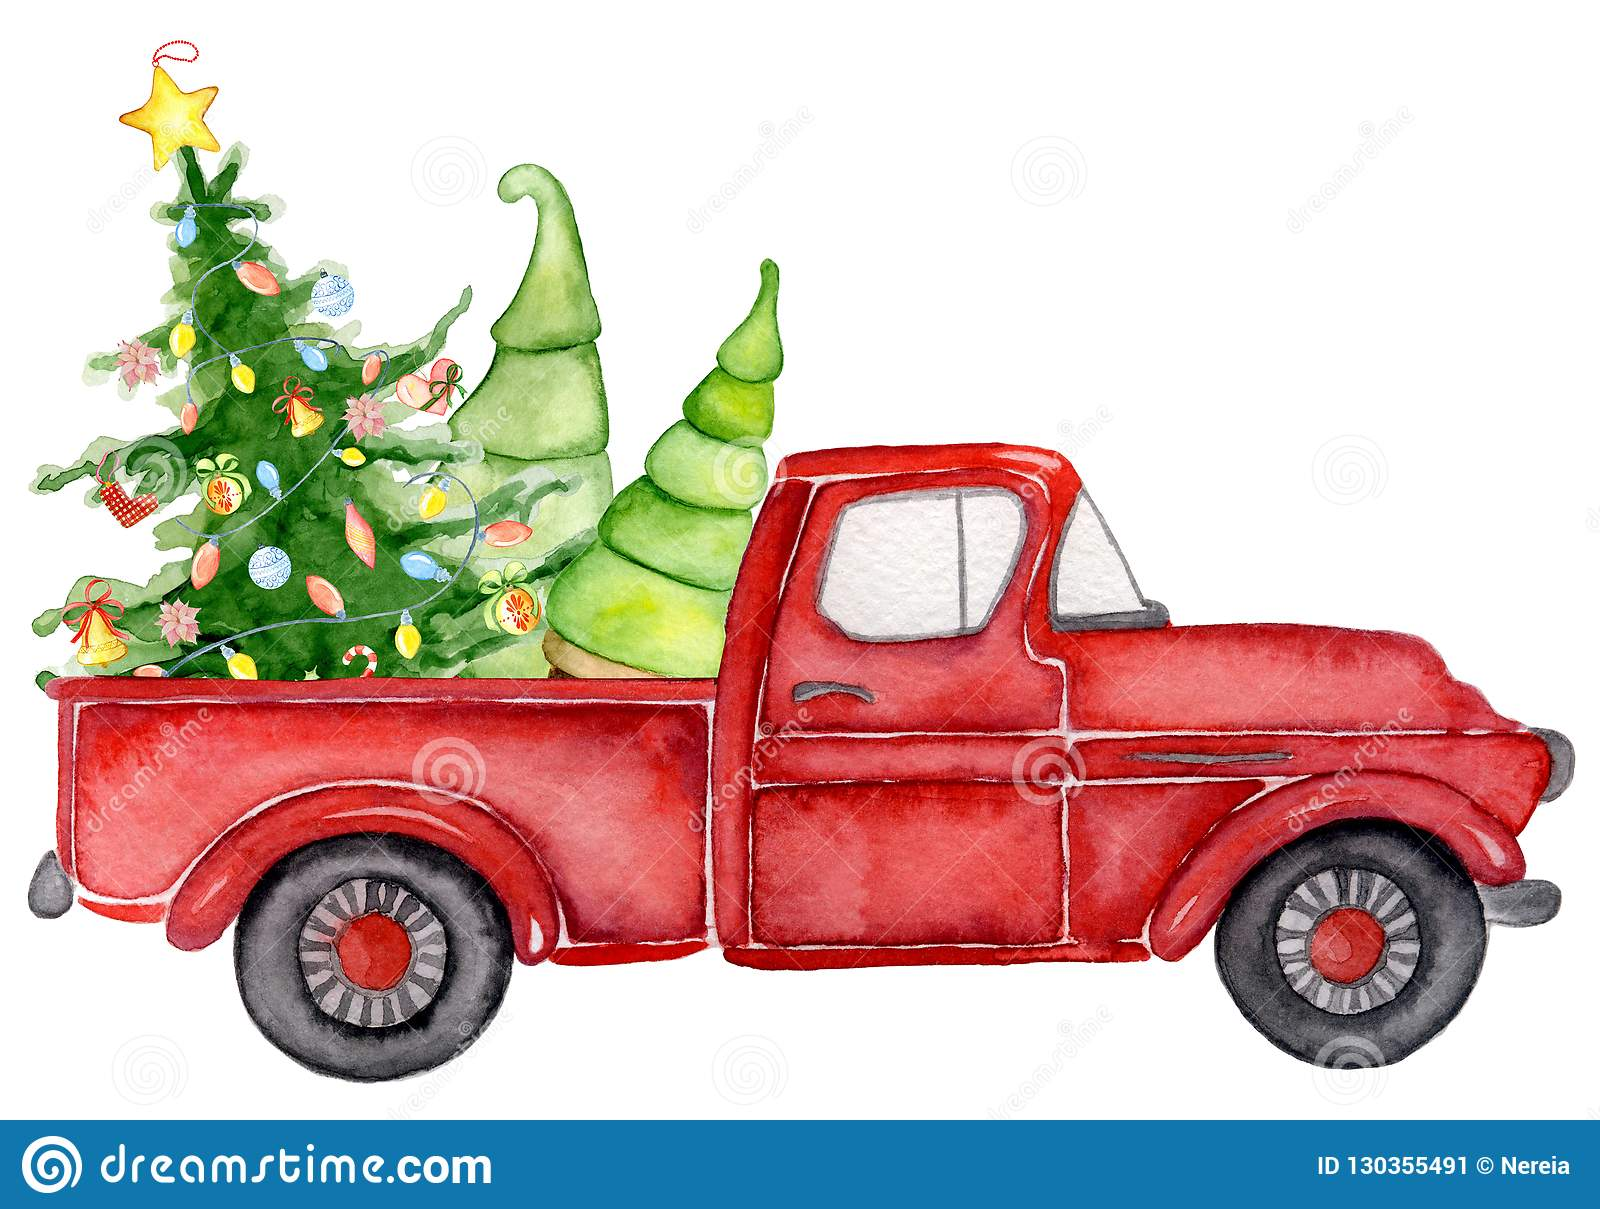 Red Christmas Truck With Pine Trees New Year Watercolor Illustration Stock Illustration Illustration Of Tree Merry 130355491